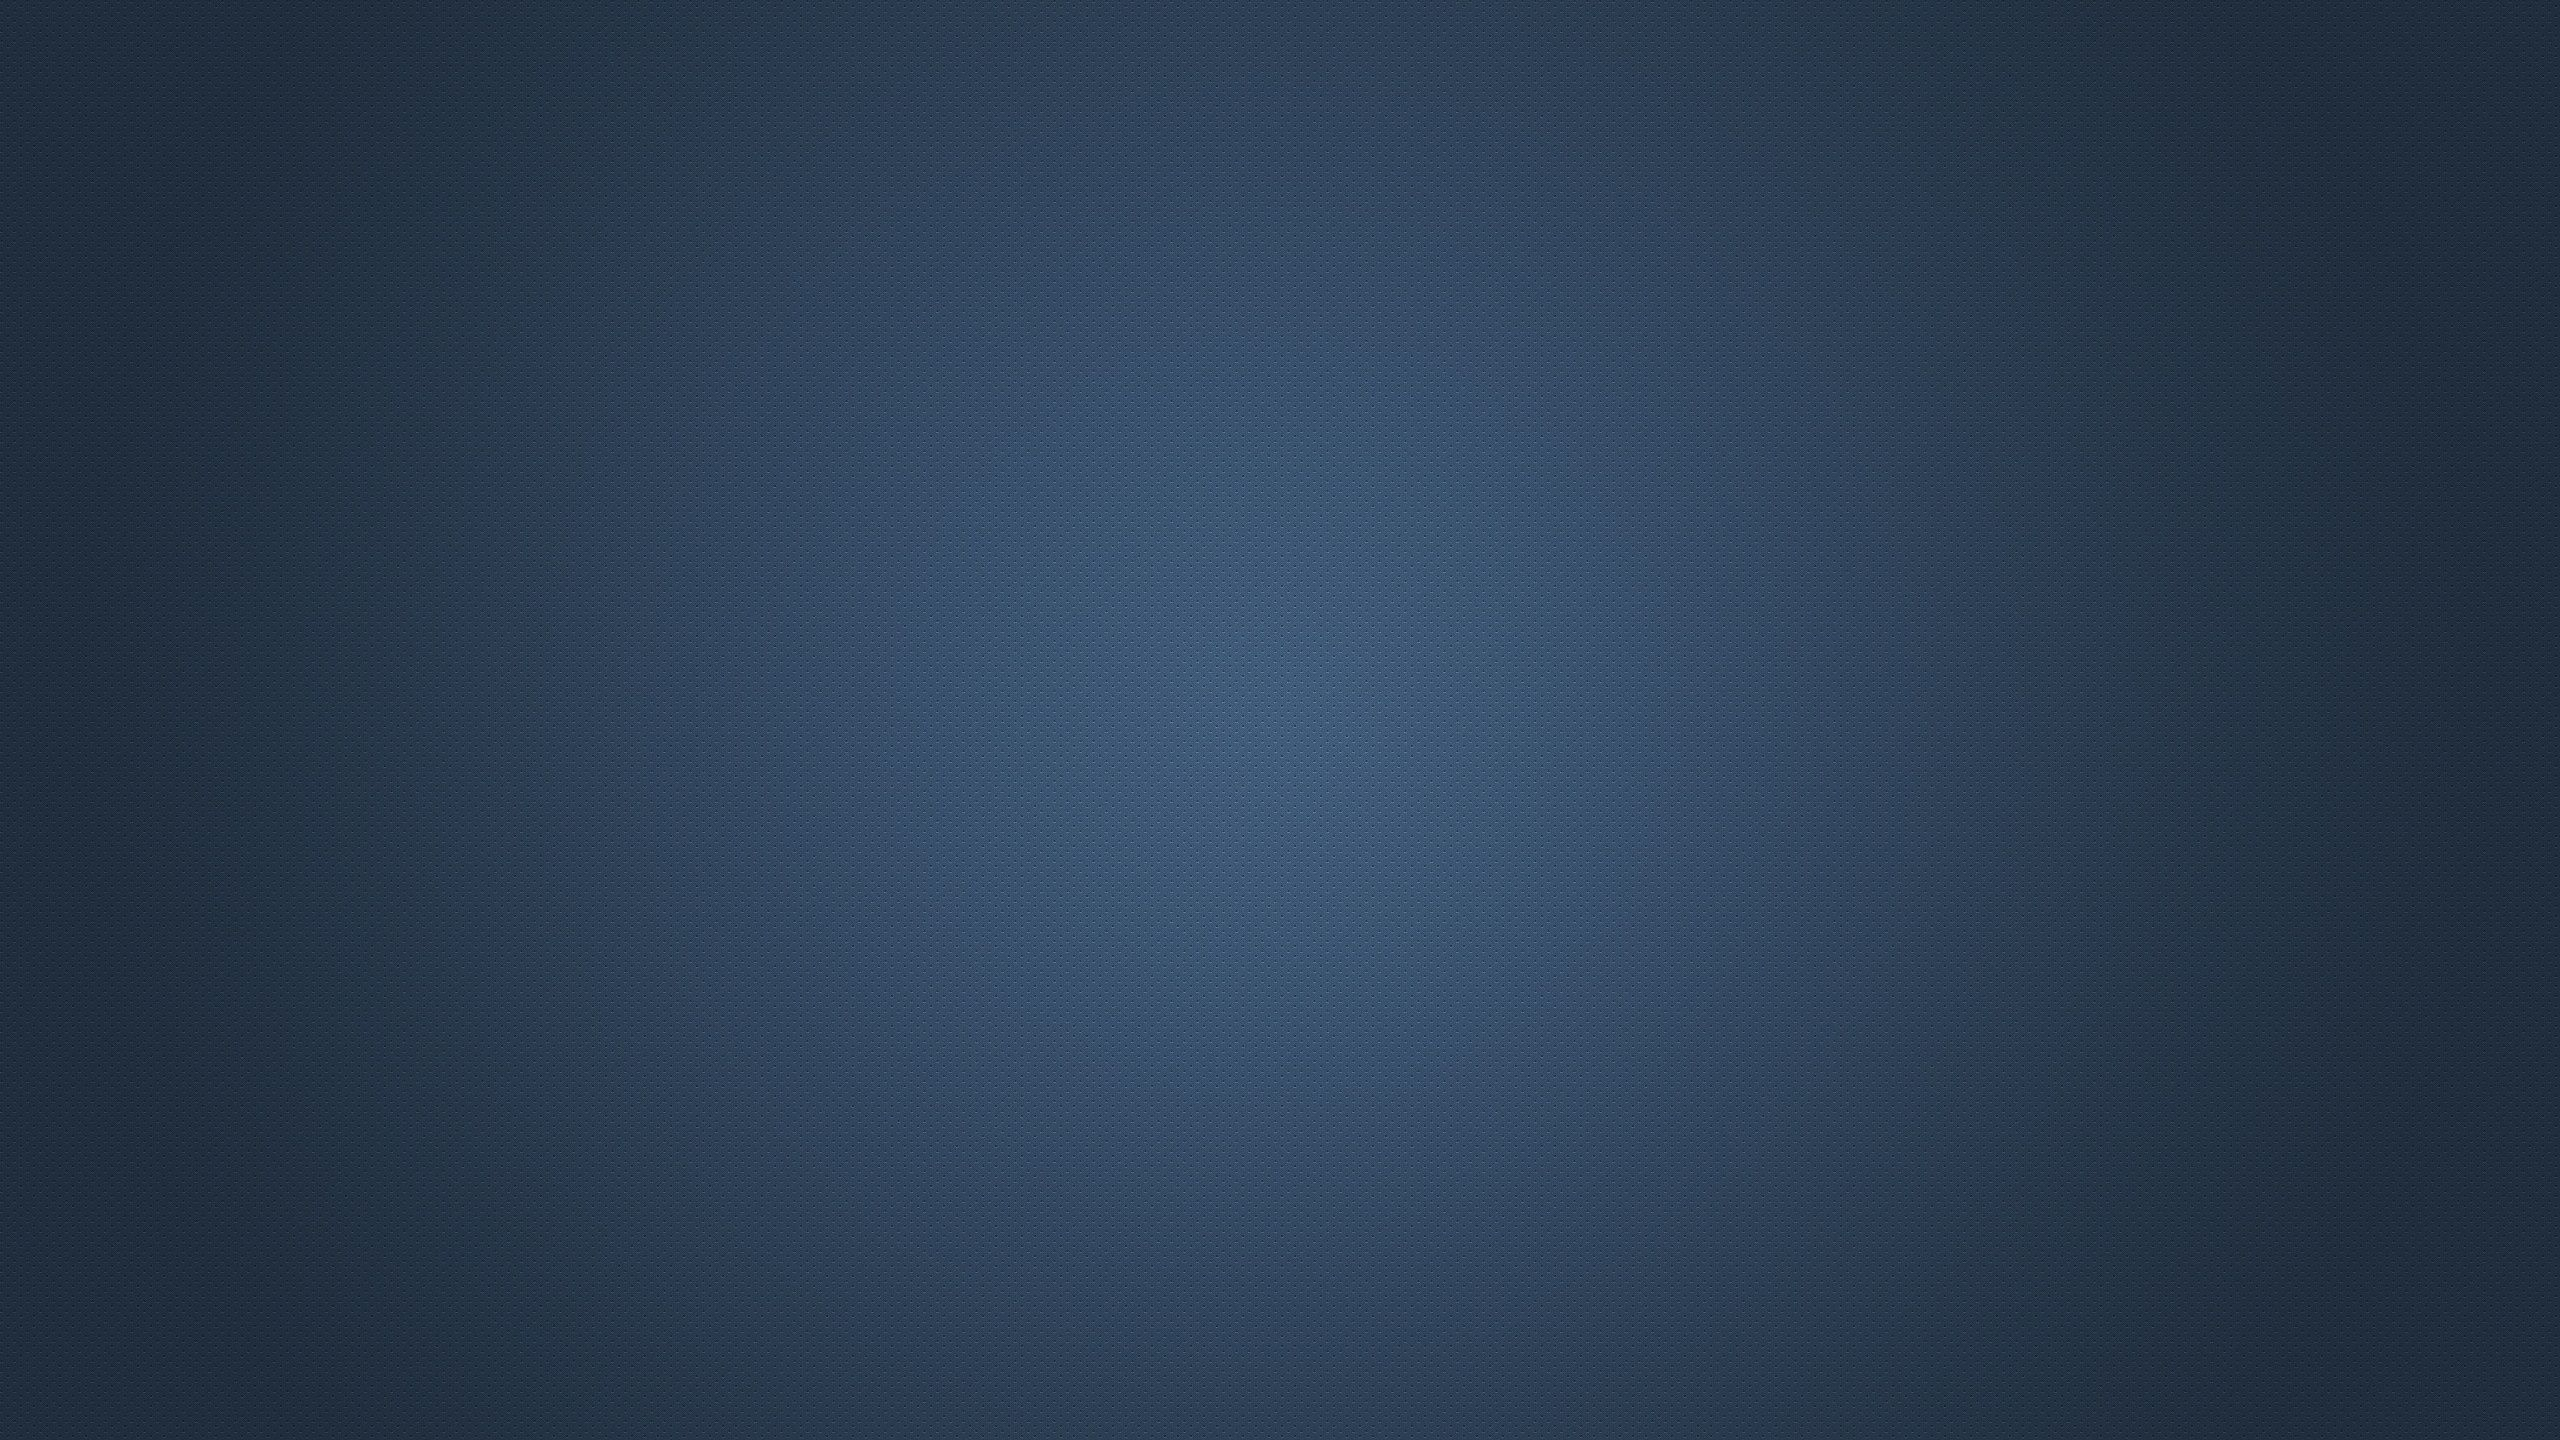 2560x1440 Blue Wallpapers Top Free 2560x1440 Blue